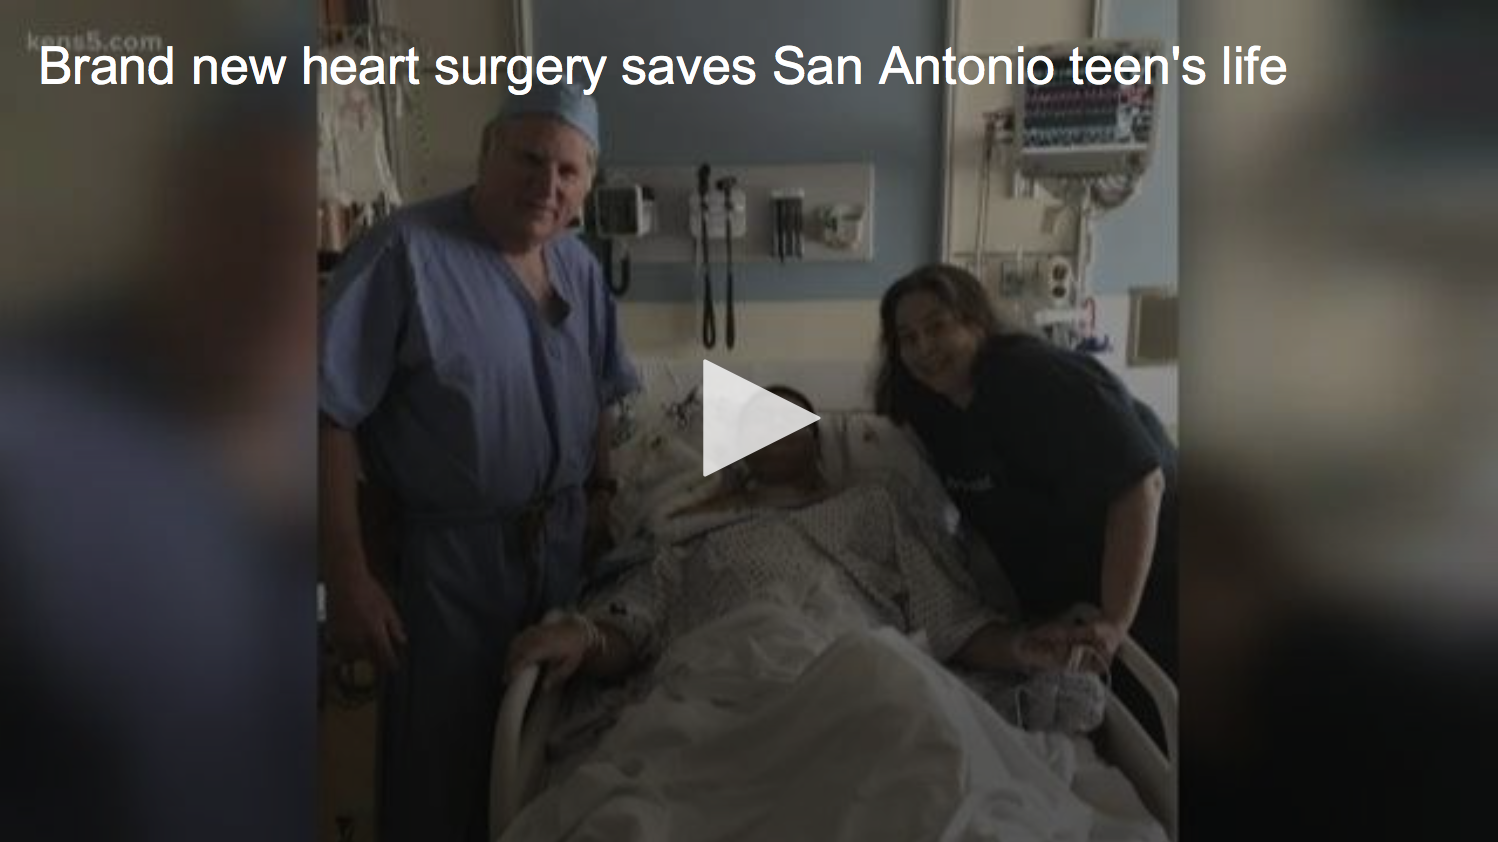 Video from CBS KENS-5 TV reports on new heart surgery that saves San Antonio teen's life